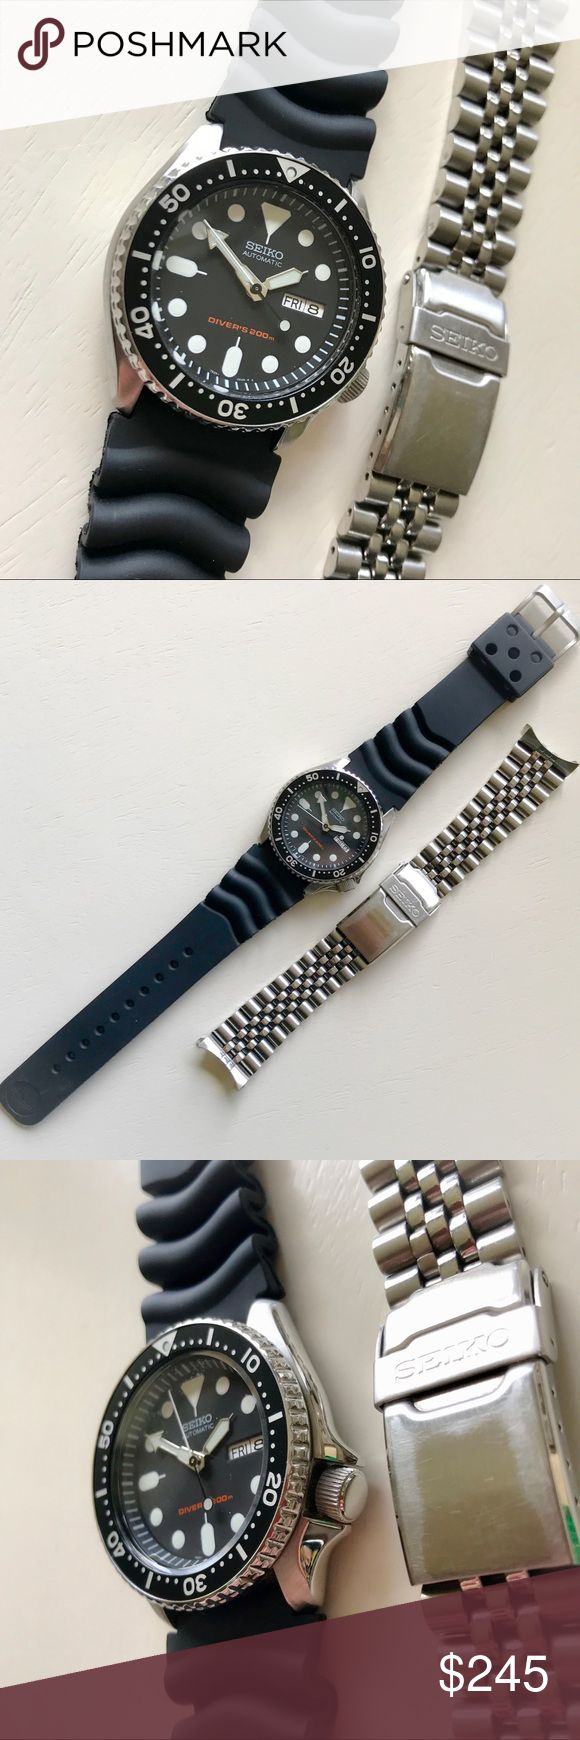 Seiko Dive Watch Seiko Dive Watch. 200m depth, Automatic movement, brand new black rubber sport band and original metal bracelet band included. Seiko Accessories Watches